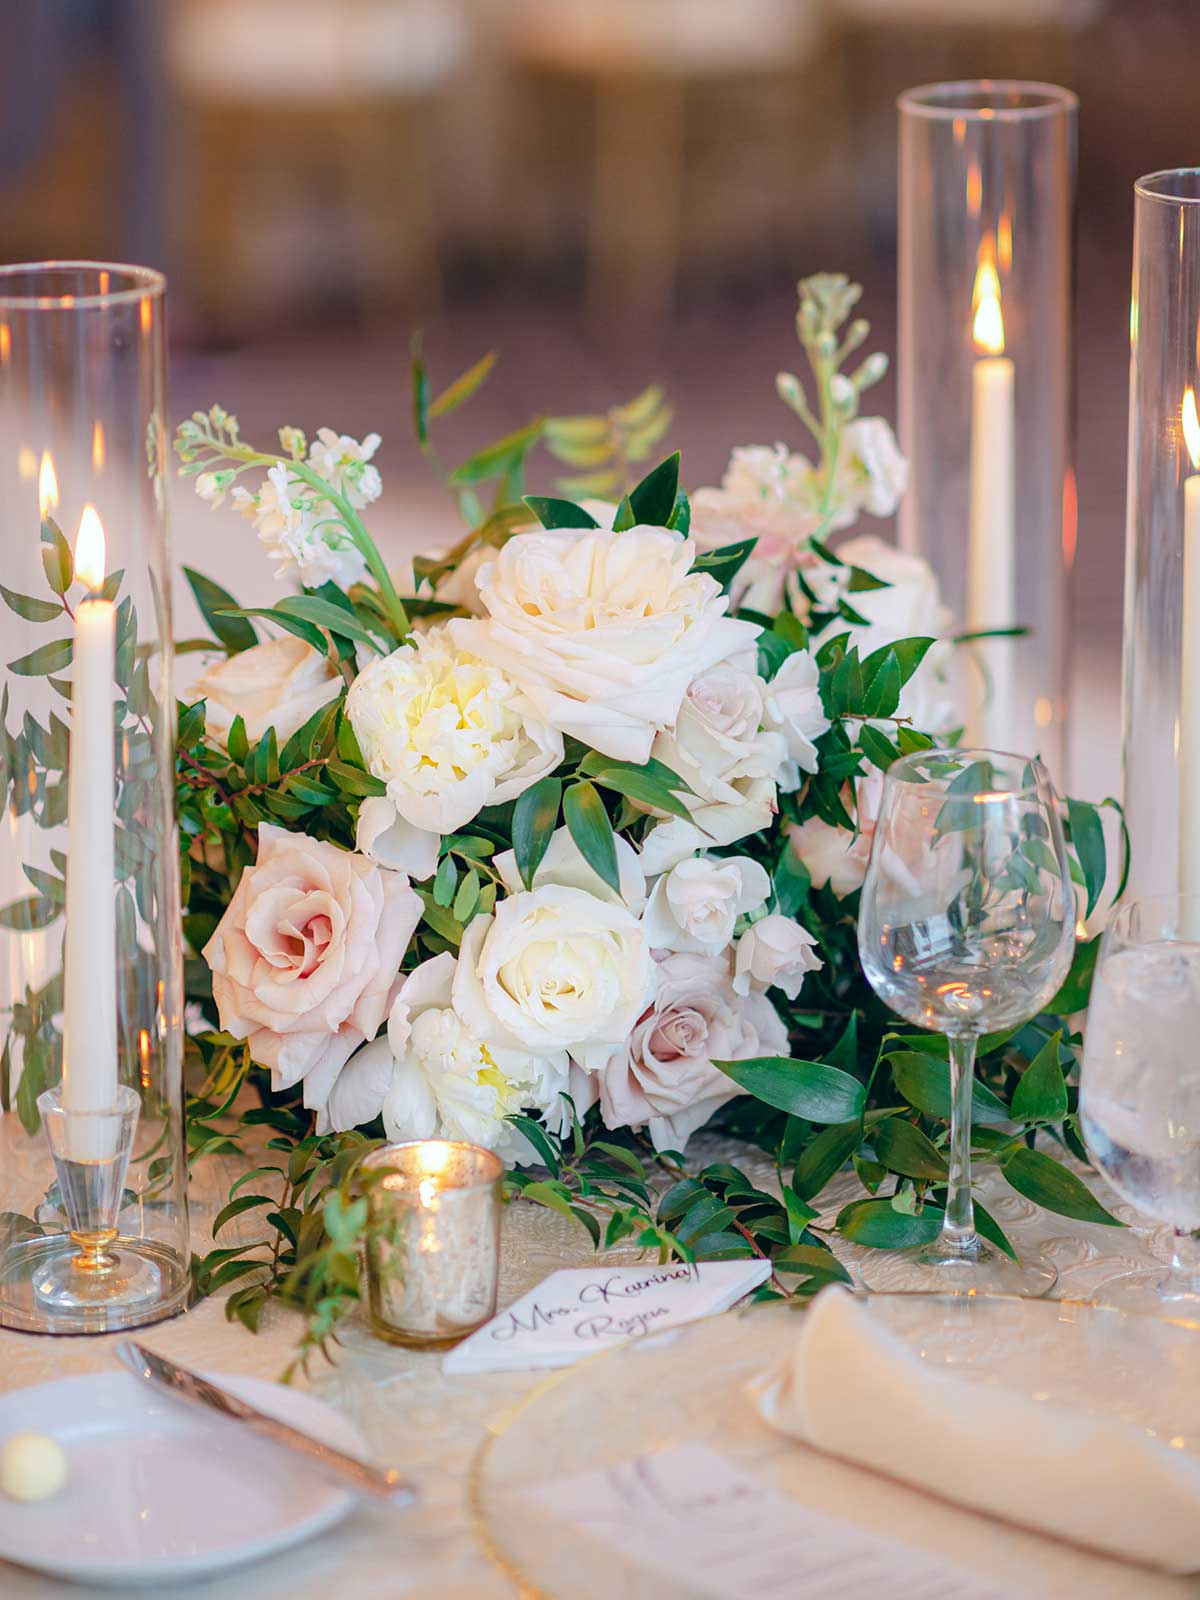 floral centerpiece with candles.